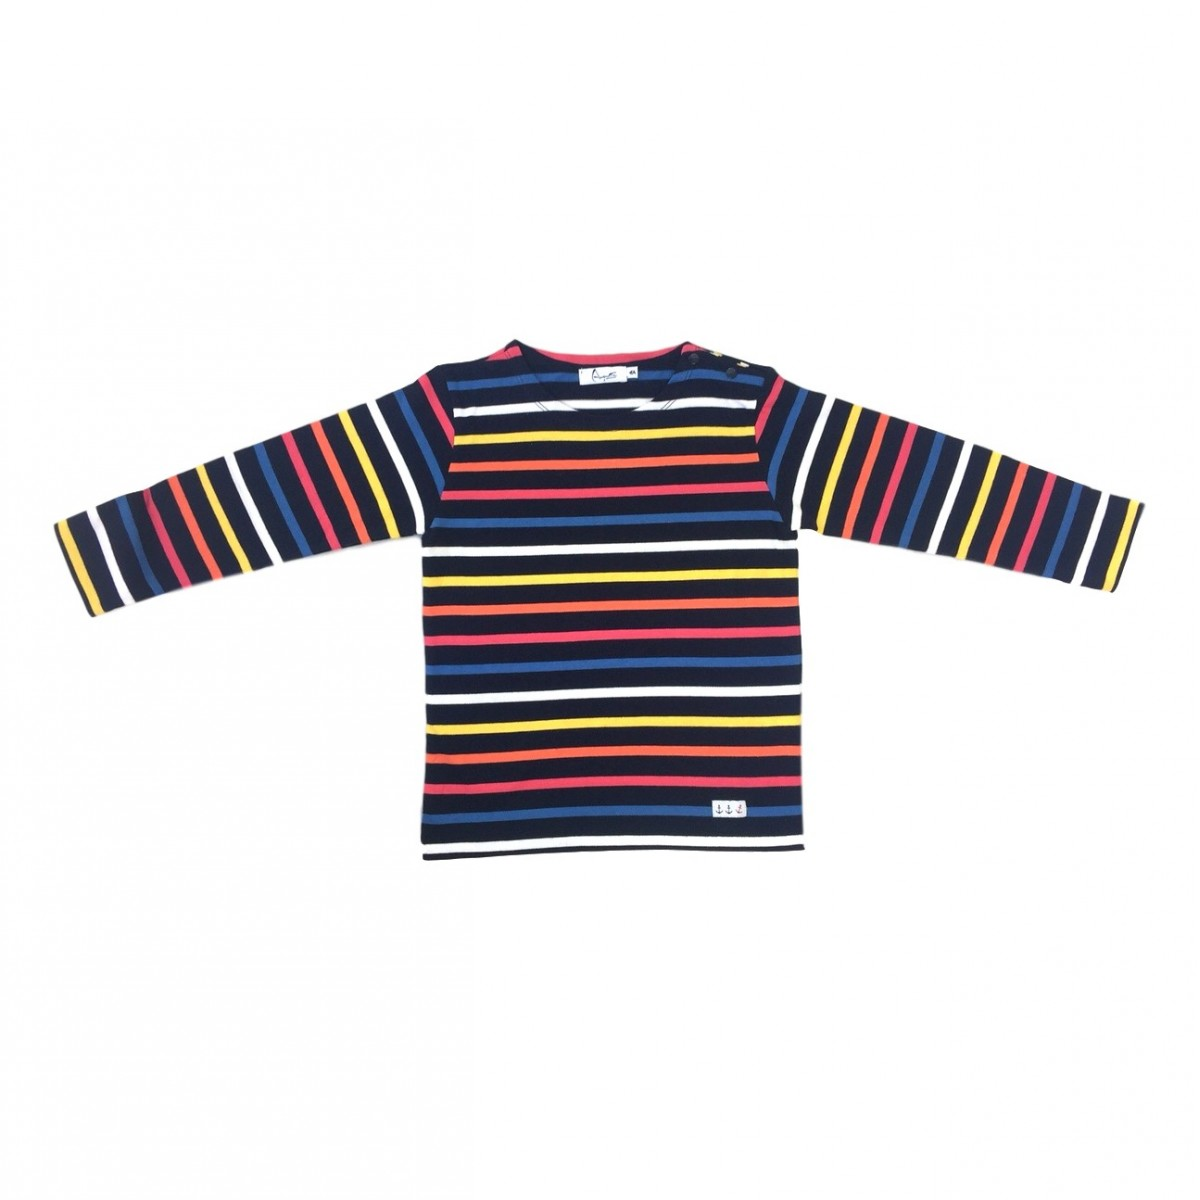 Breton Shirt long sleeves for baby and children